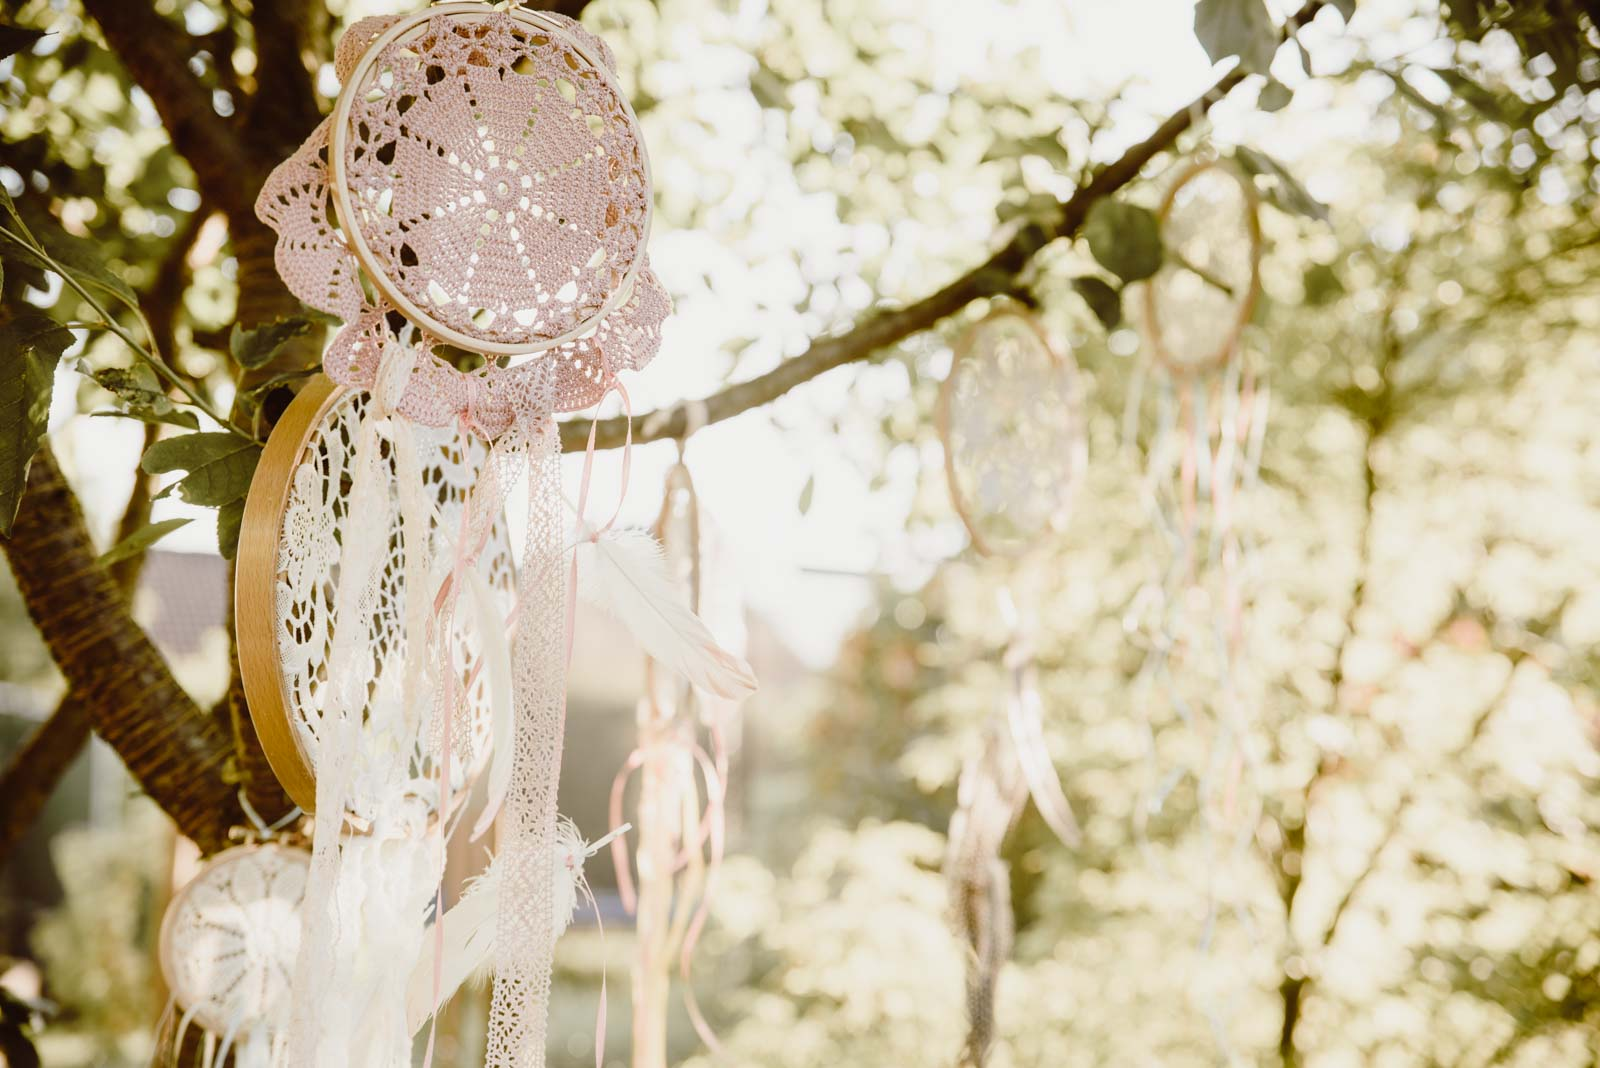 DIY-Dreamcatcher-Boho-Wedding-Dekoration-Traumfaenger-Hochzeitsdekoration-4